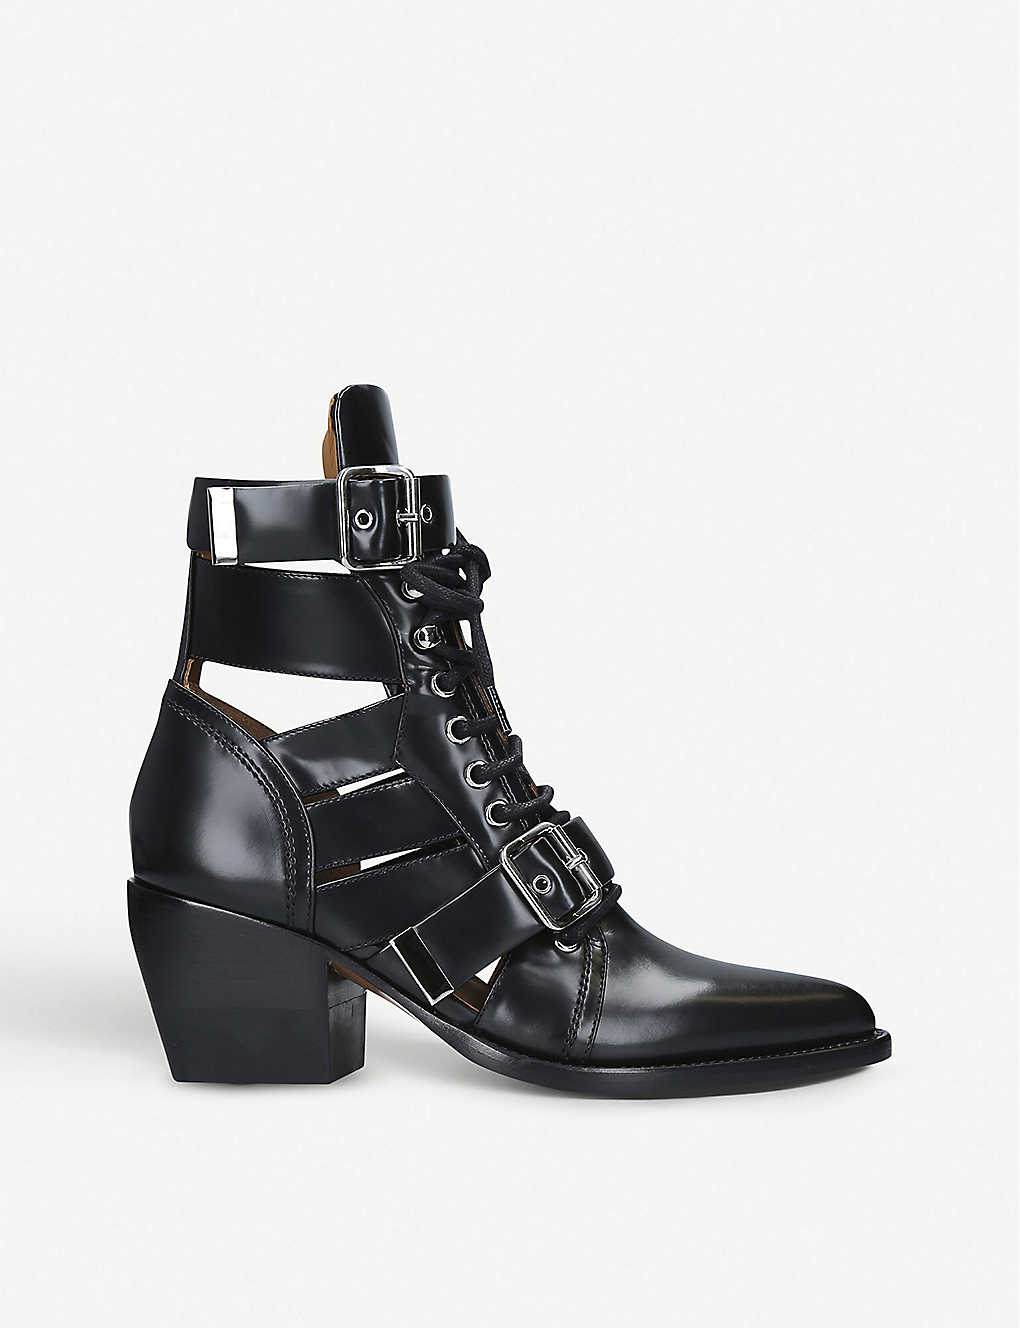 cfb2d6c8 Rylee lace-up leather boots